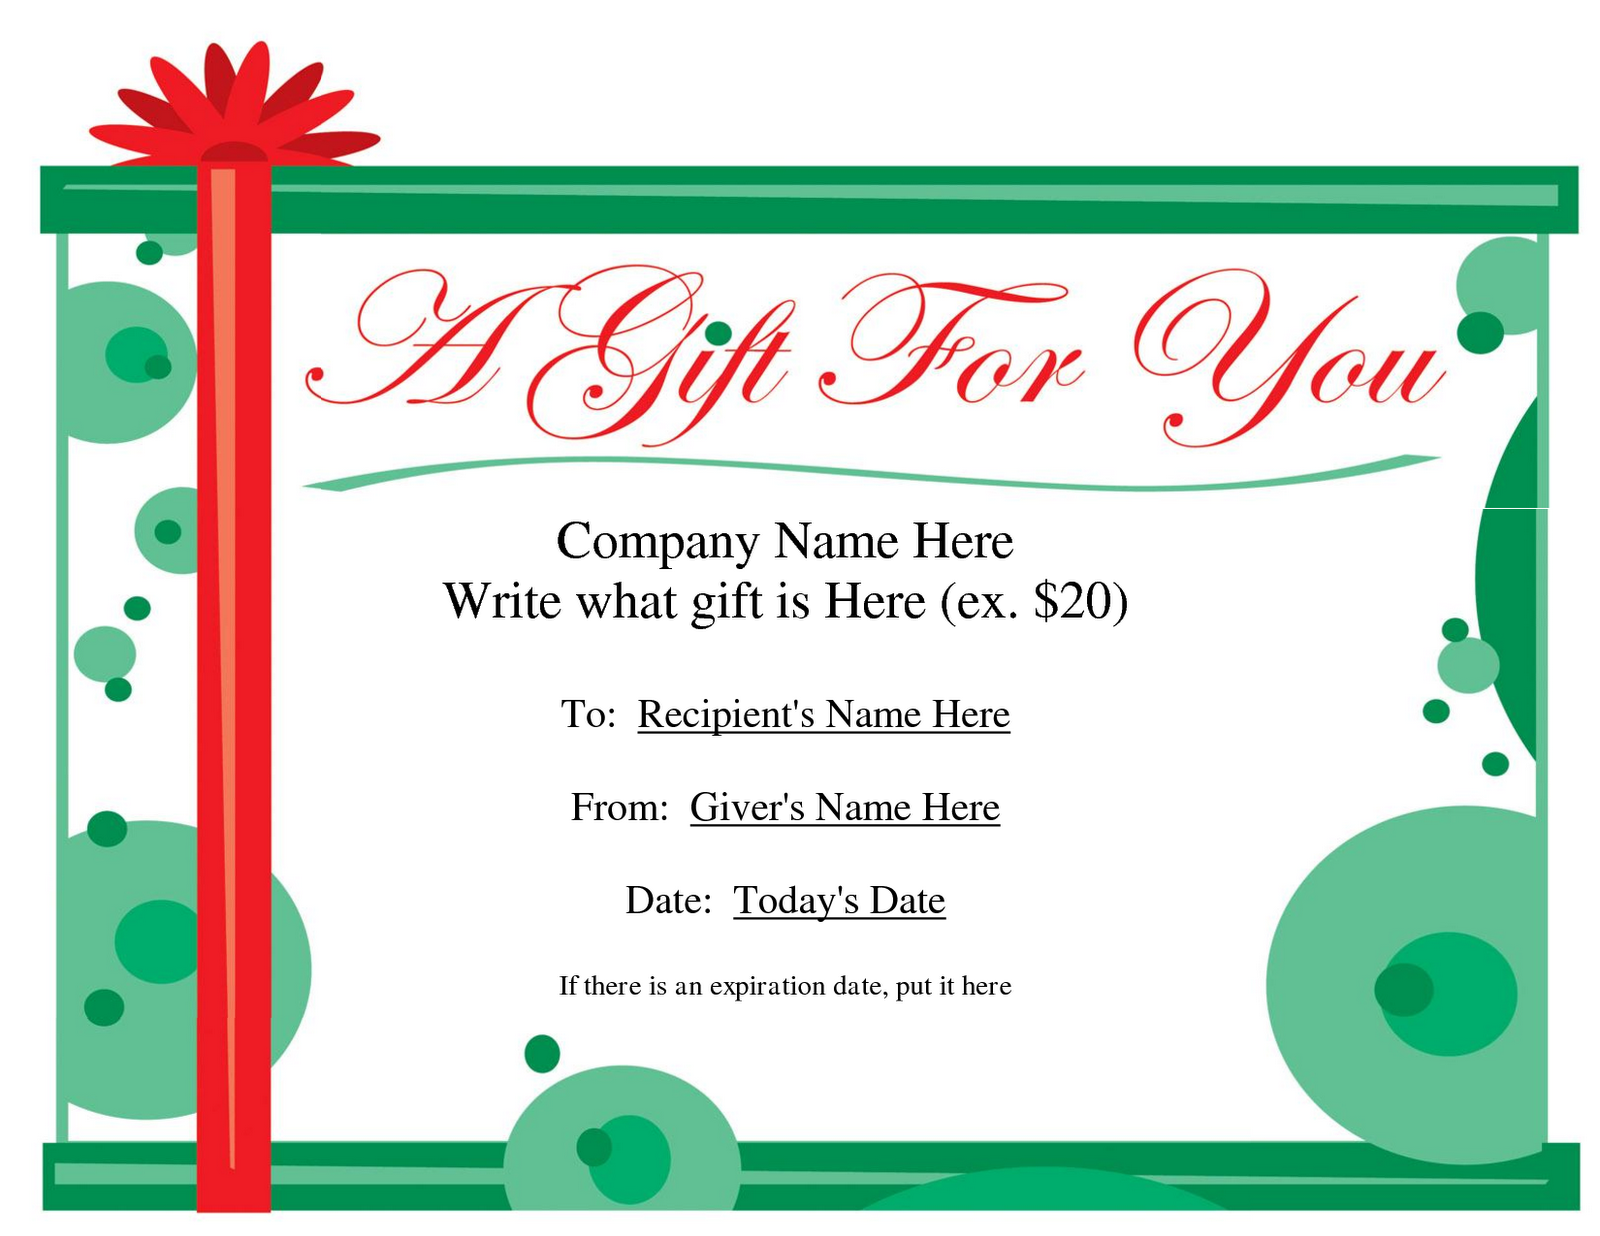 Blank printable gift certificate template for Downloadable gift certificate templates